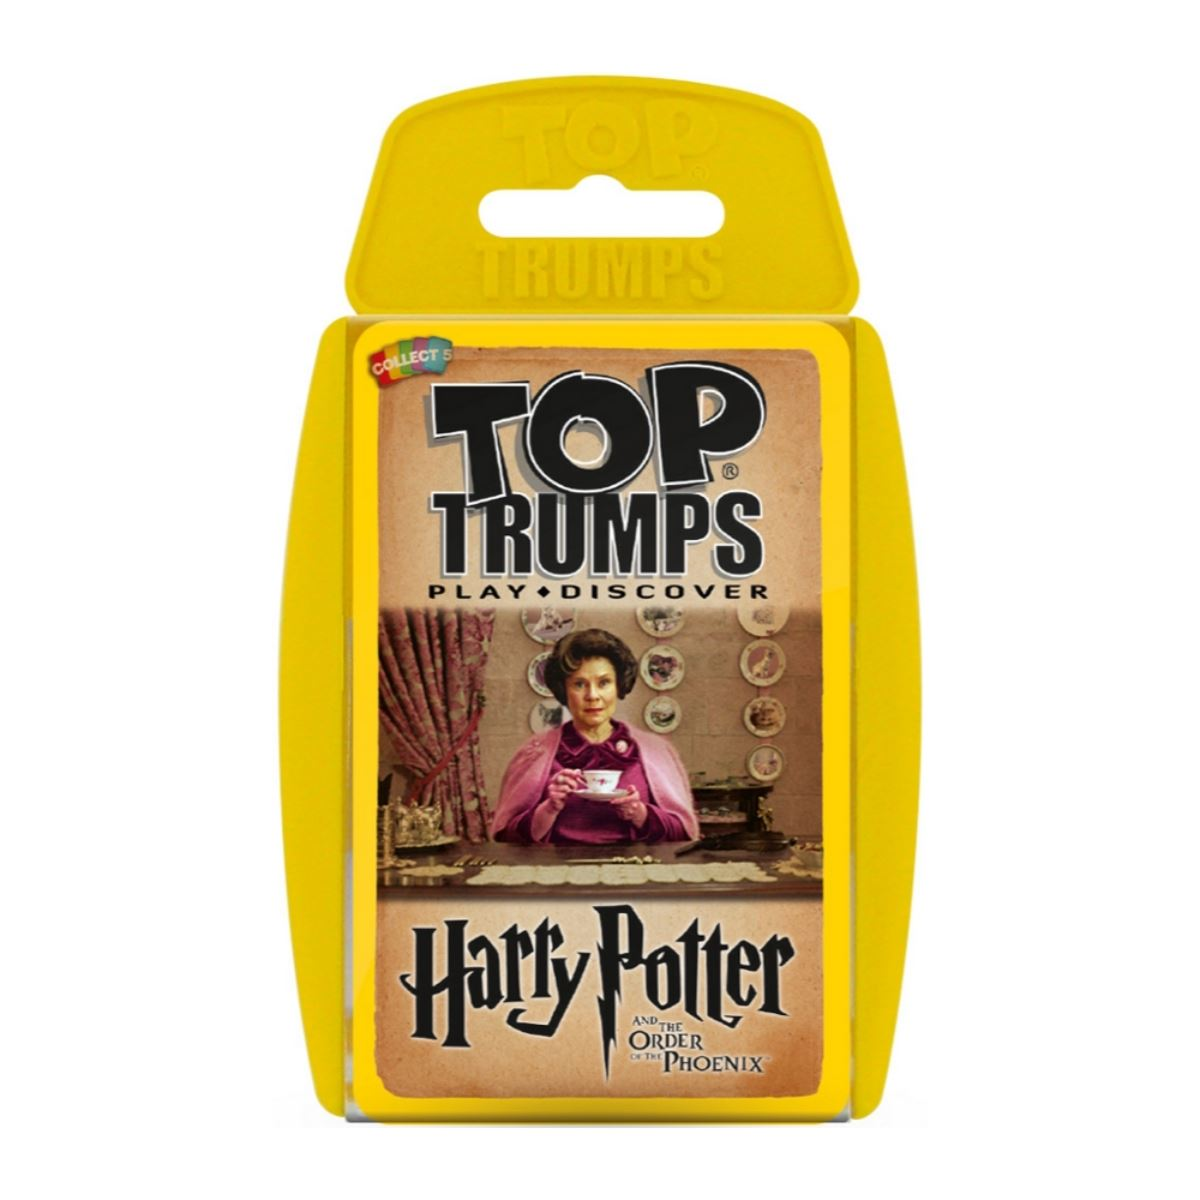 Harry Potter and the Order of the Phoenix - Top Trumps Game, front of box